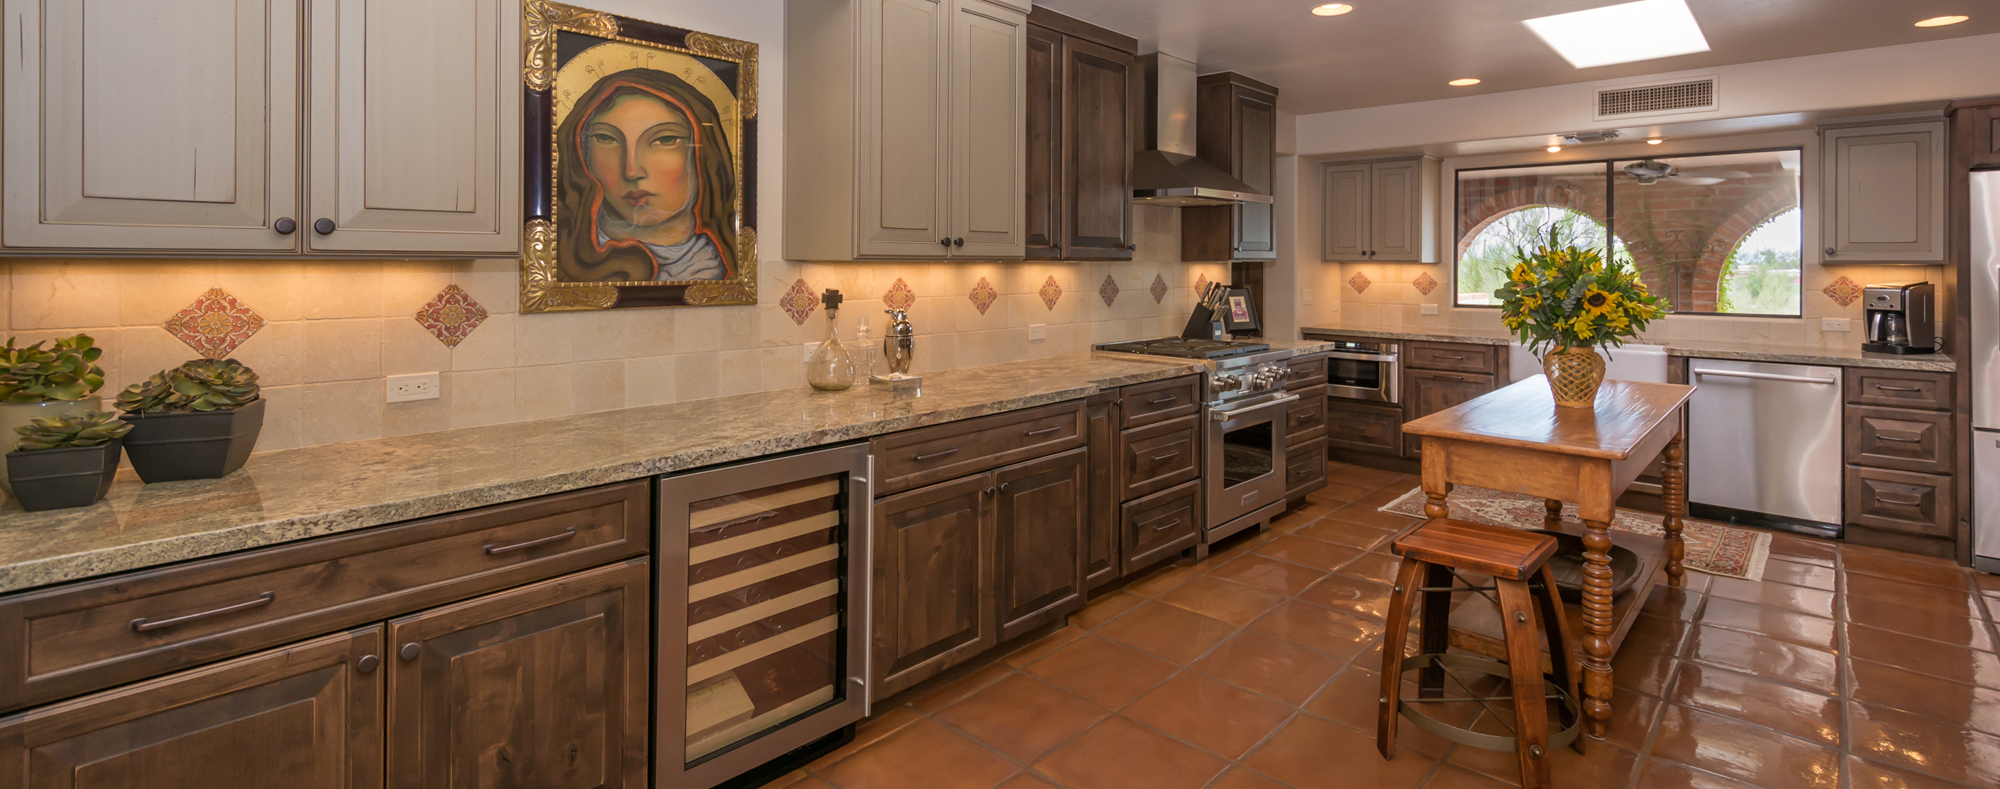 Canyon Cabinetry Kitchen Design Bath Remodel Cabinets Tucson AZ - Bathroom showroom tucson